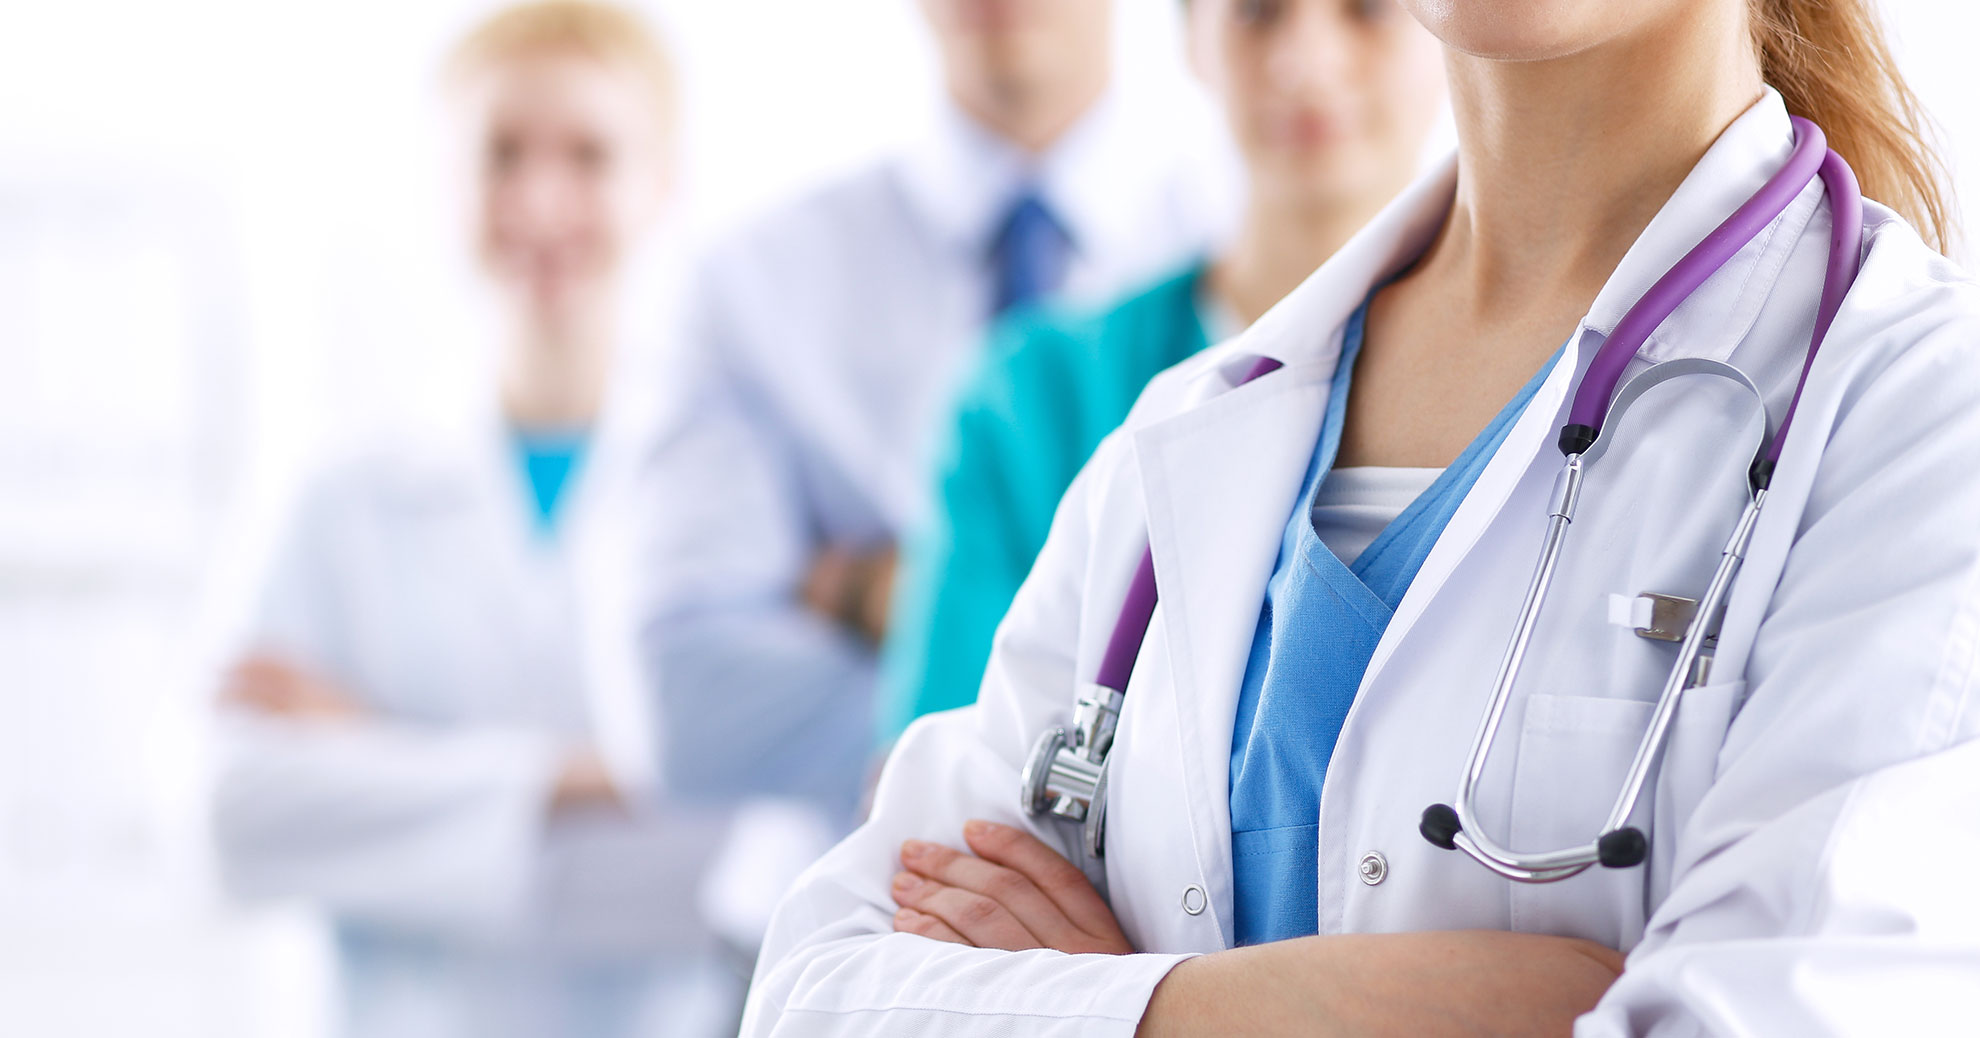 Medical Tourism - The Objective is to Promote India as a Quality Healthcare Destination